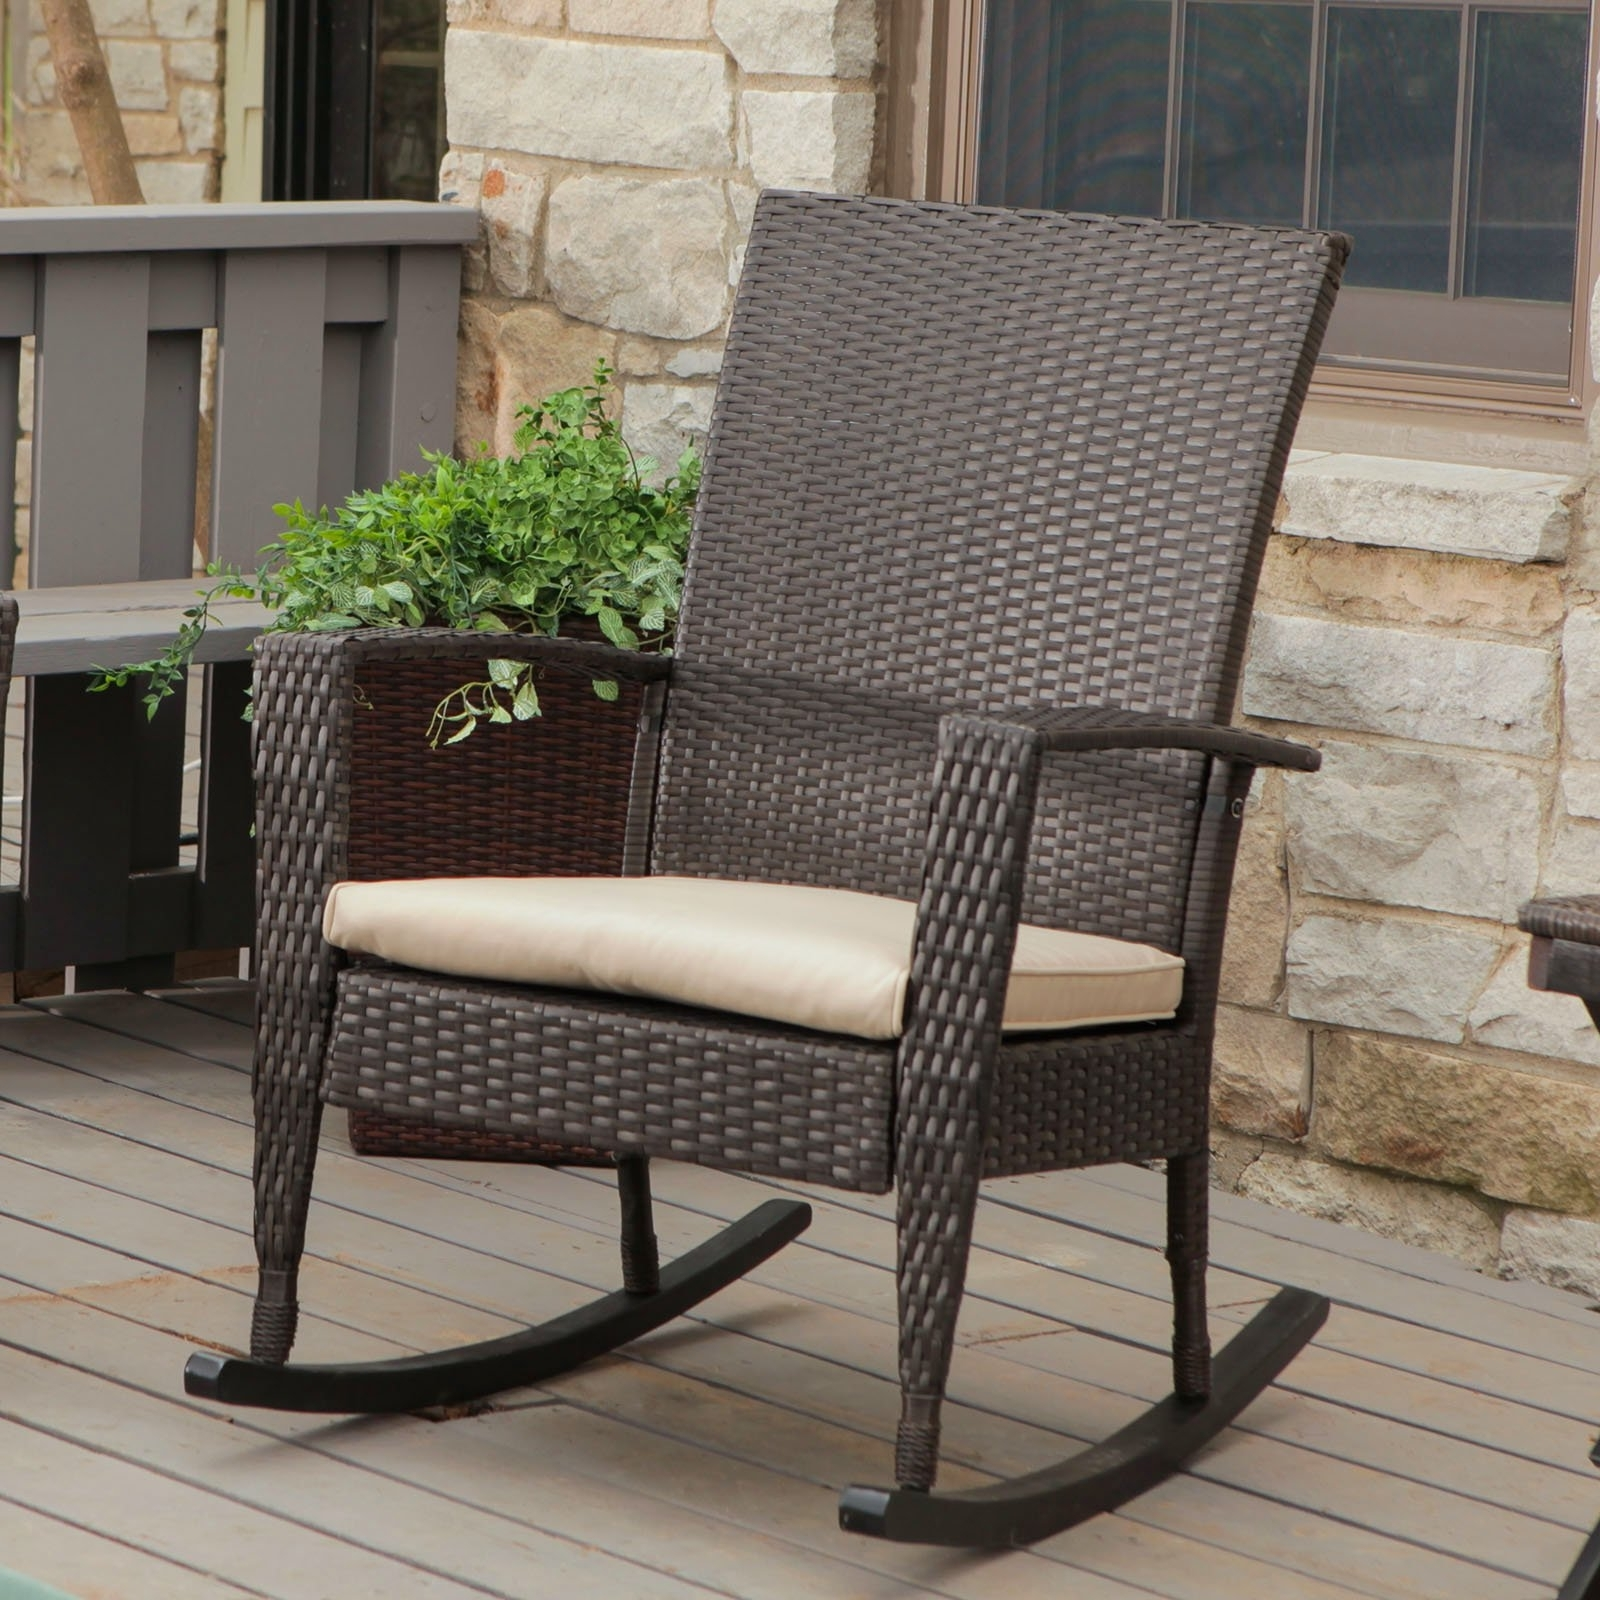 Outdoor Plastic Wicker Rocking Chairs Sale Black Chair Set White With Current Wicker Rocking Chairs Sets (View 5 of 15)